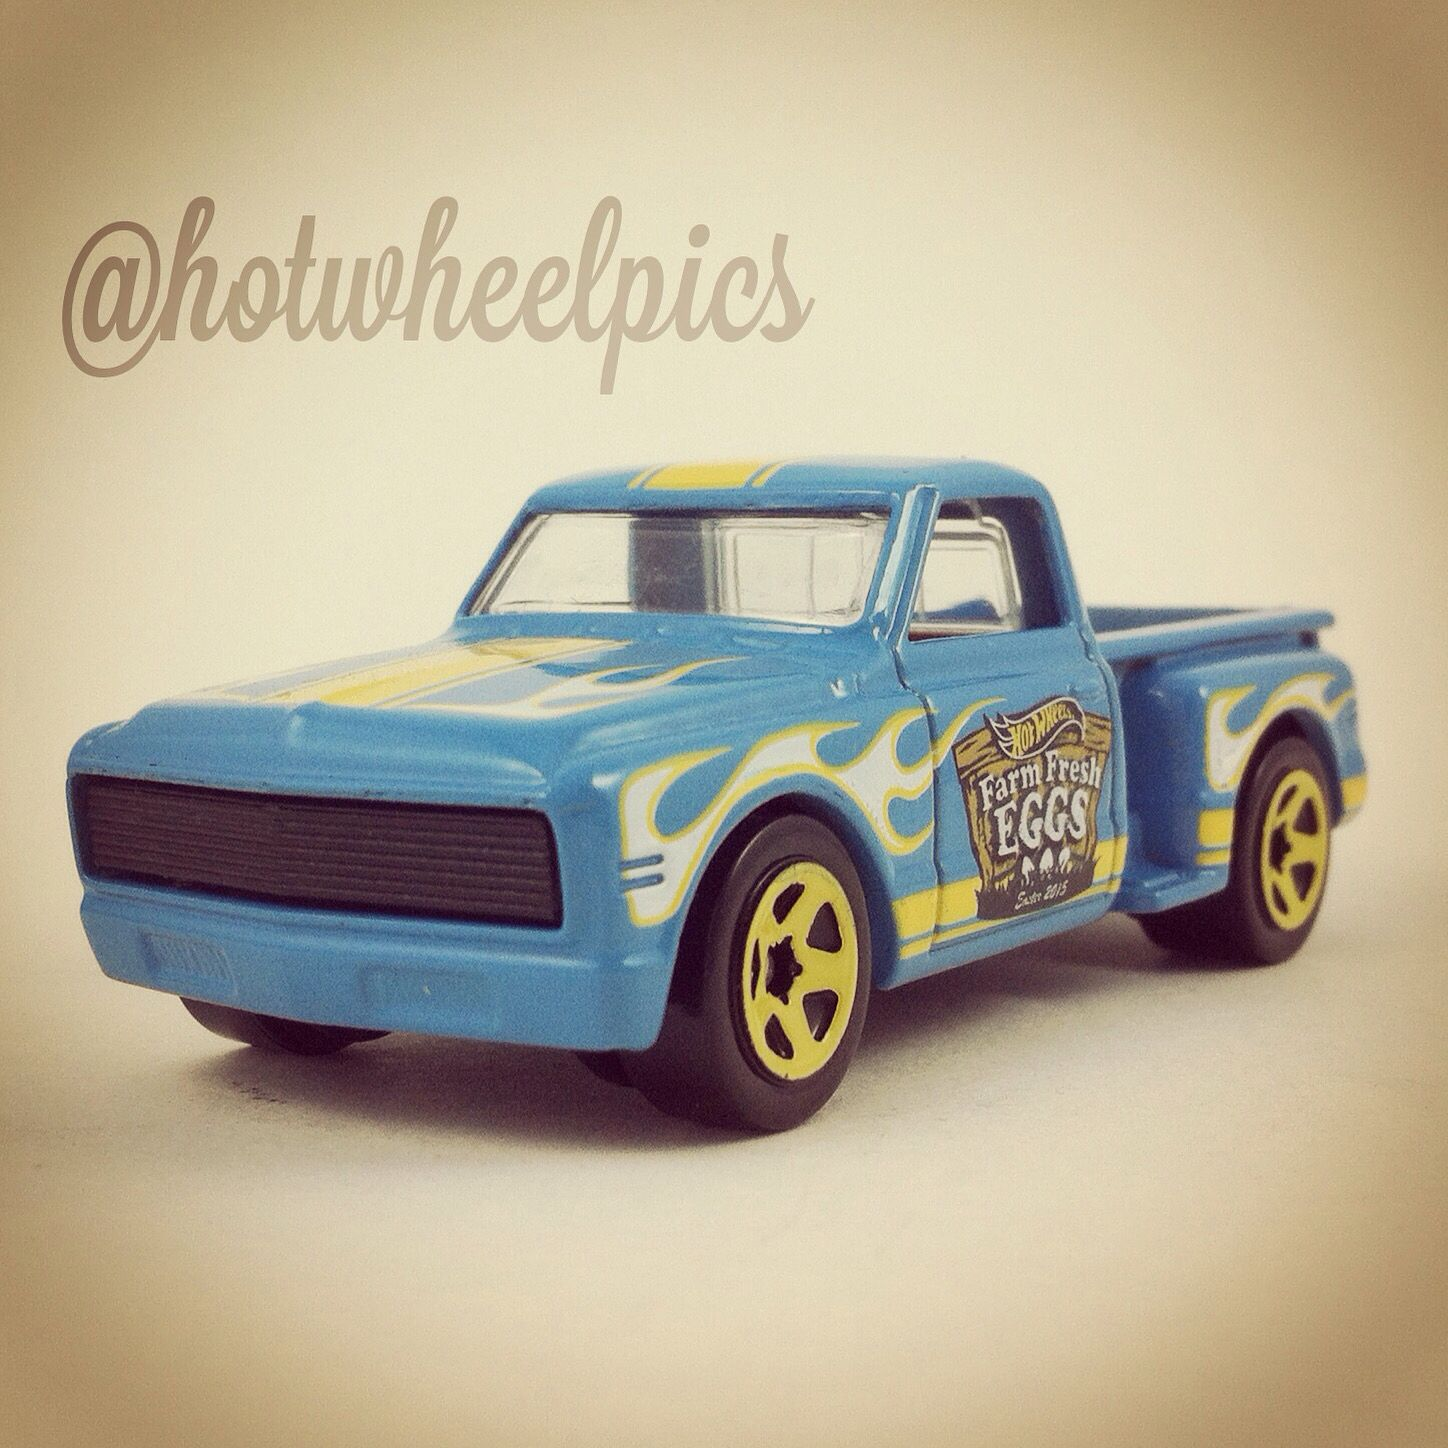 Happy Easter Deora Ii 2015 Hot Wheels Easter Cars Walmart Excl Hotwheels Toys Diecast Easter Hot Wheels Hot Wheels Cars Matchbox Cars